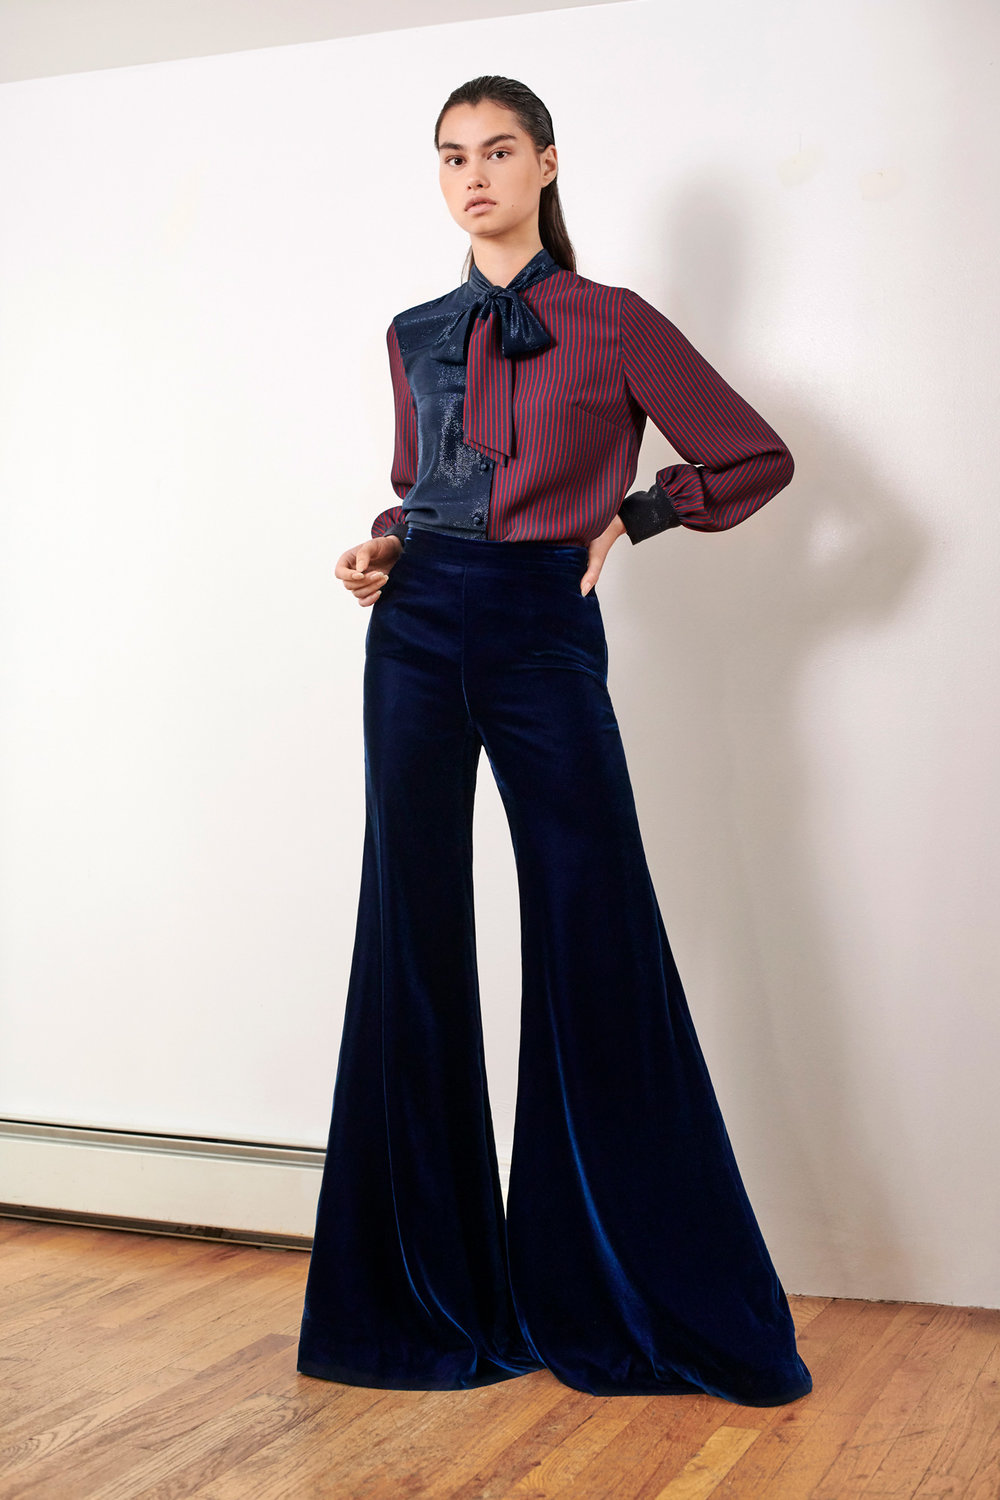 JULIANNA-BASS-PF19-09-The-Jera-Blouse-&-The-Patty-Trouser-WEB.jpg